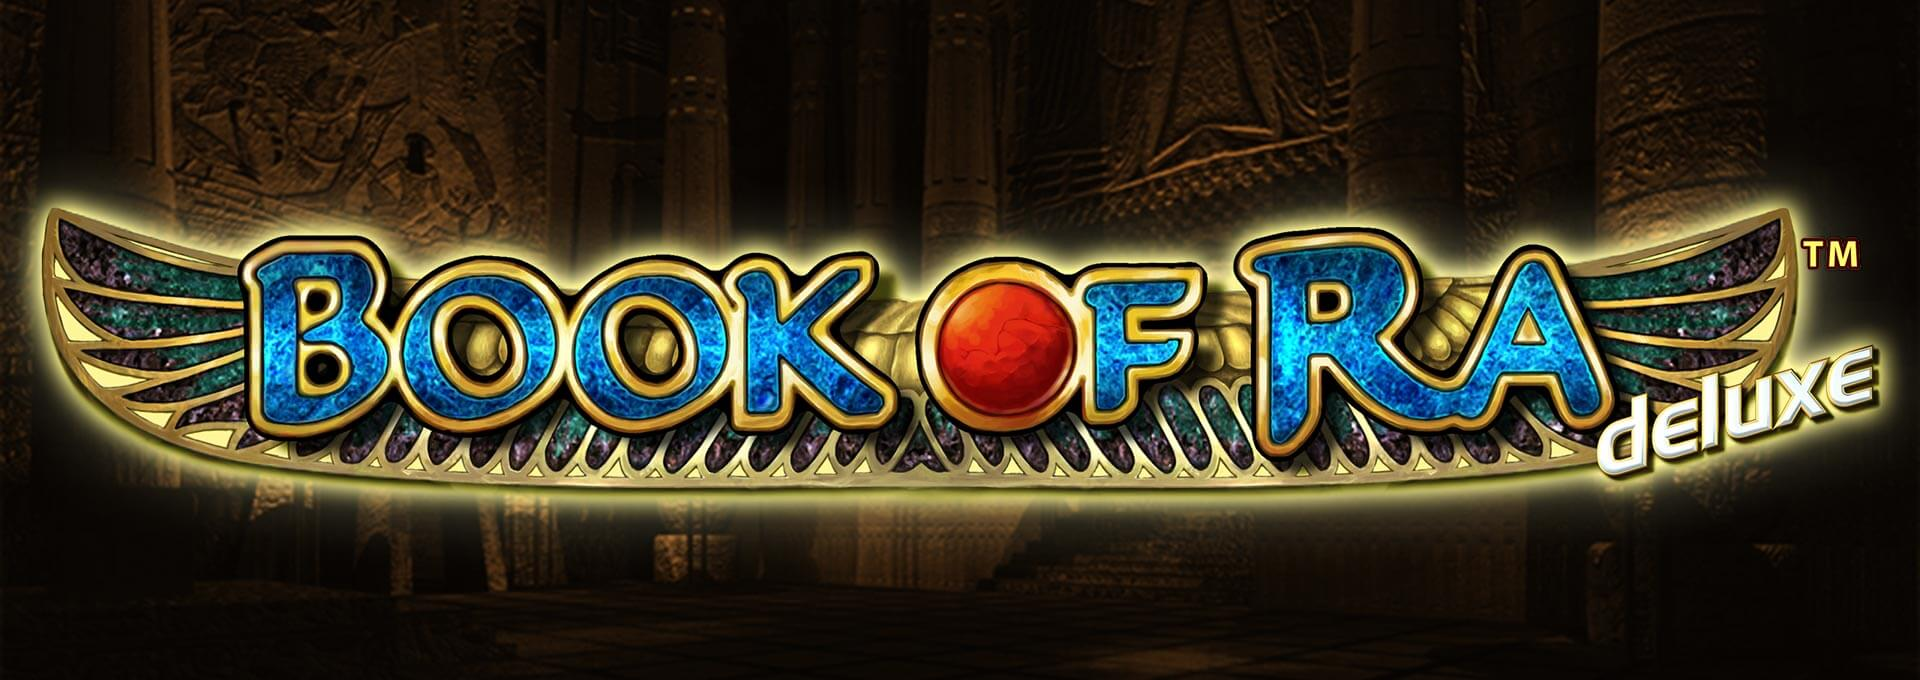 casino online deutschland bok of ra